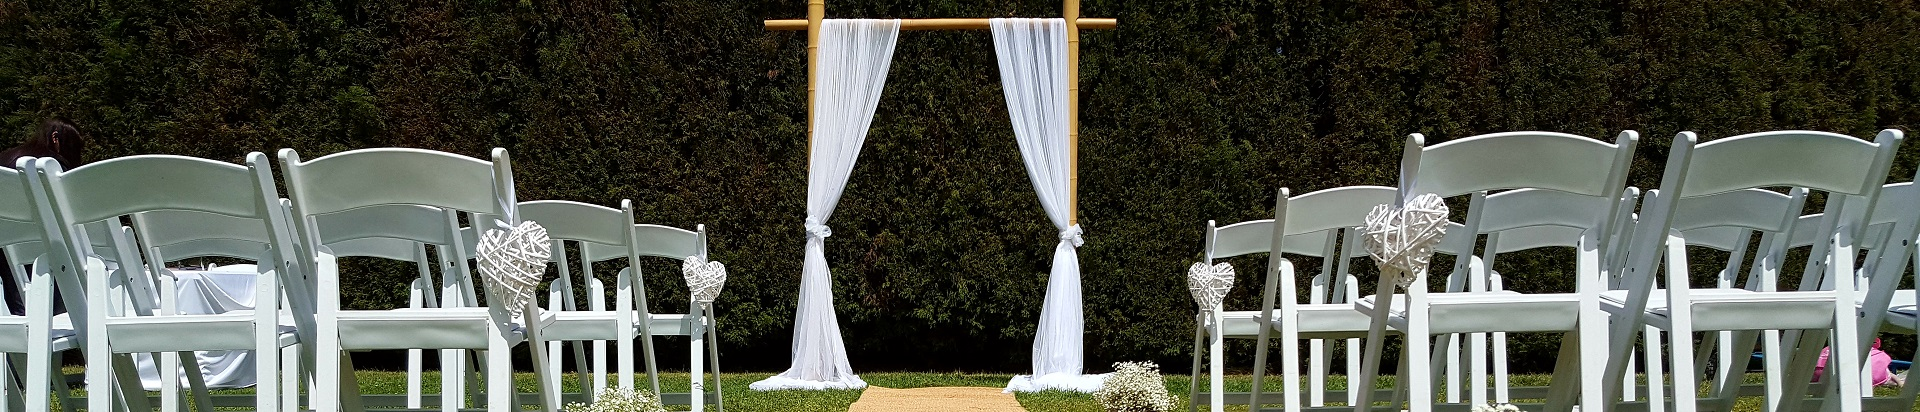 Wedding hire decorations event hire melbourne products for hire junglespirit Choice Image